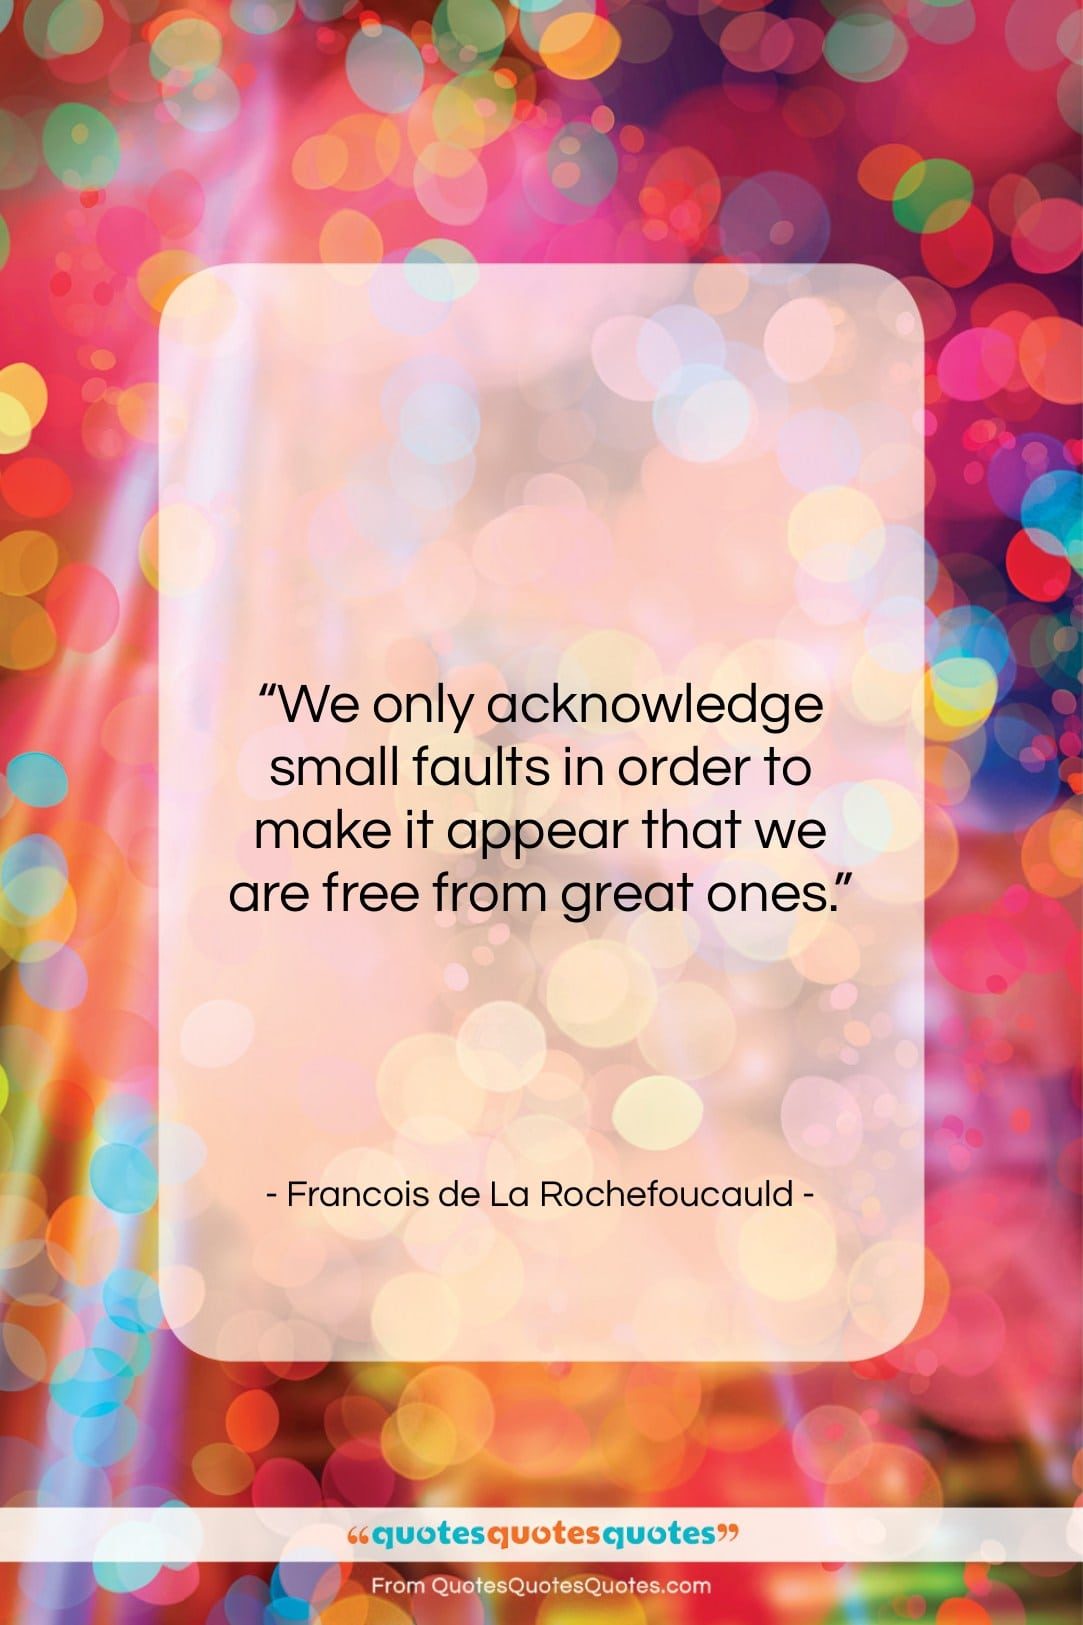 """Francois de La Rochefoucauld quote: """"We only acknowledge small faults in order…""""- at QuotesQuotesQuotes.com"""